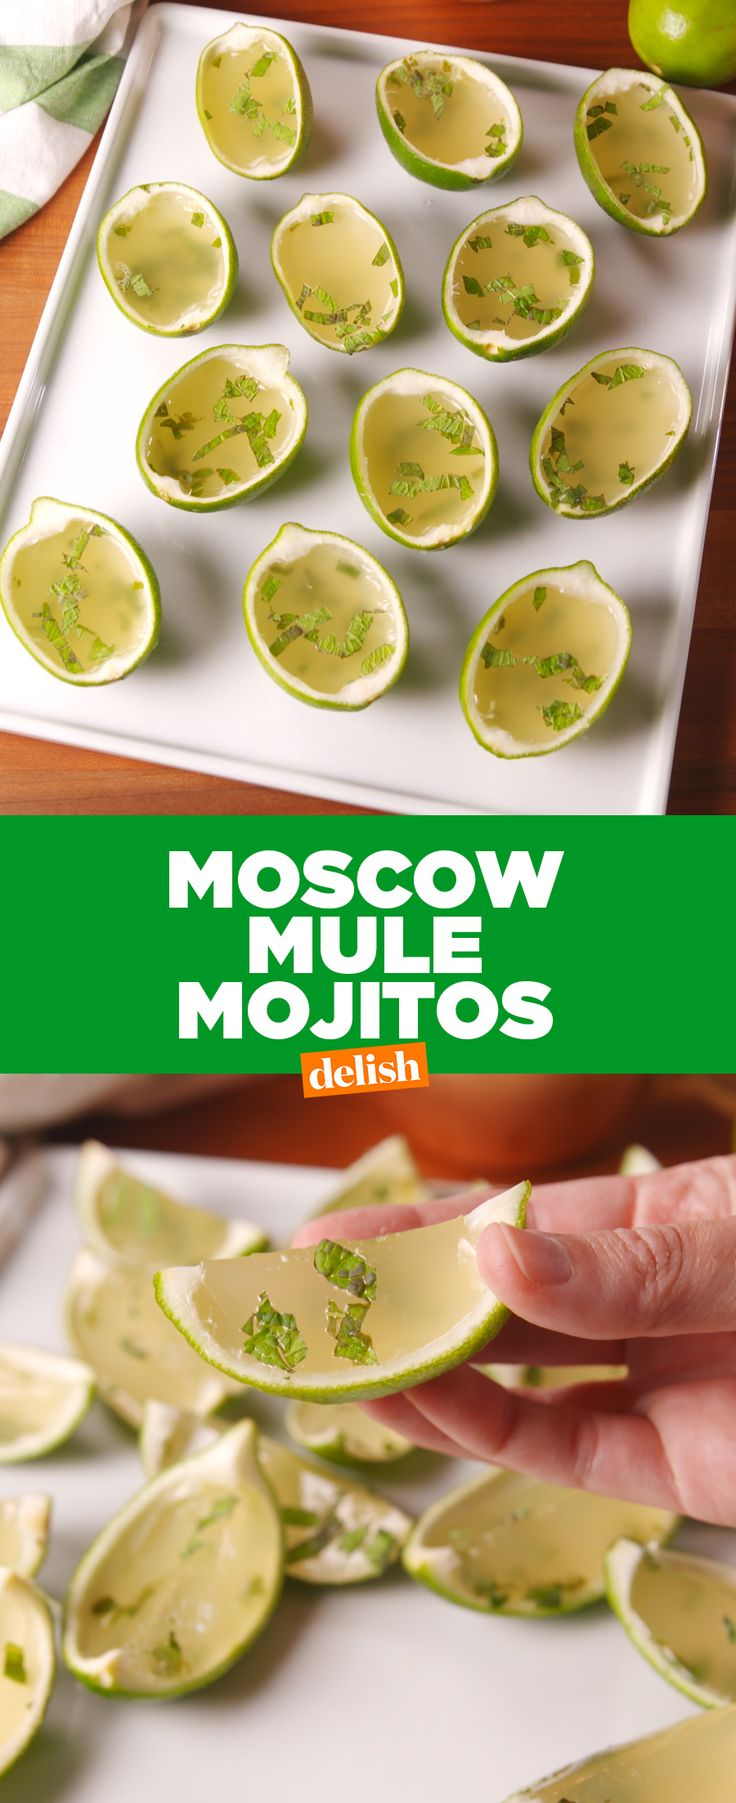 You've never had Moscow Mules like THIS before. Get the recipe at Delish.com.